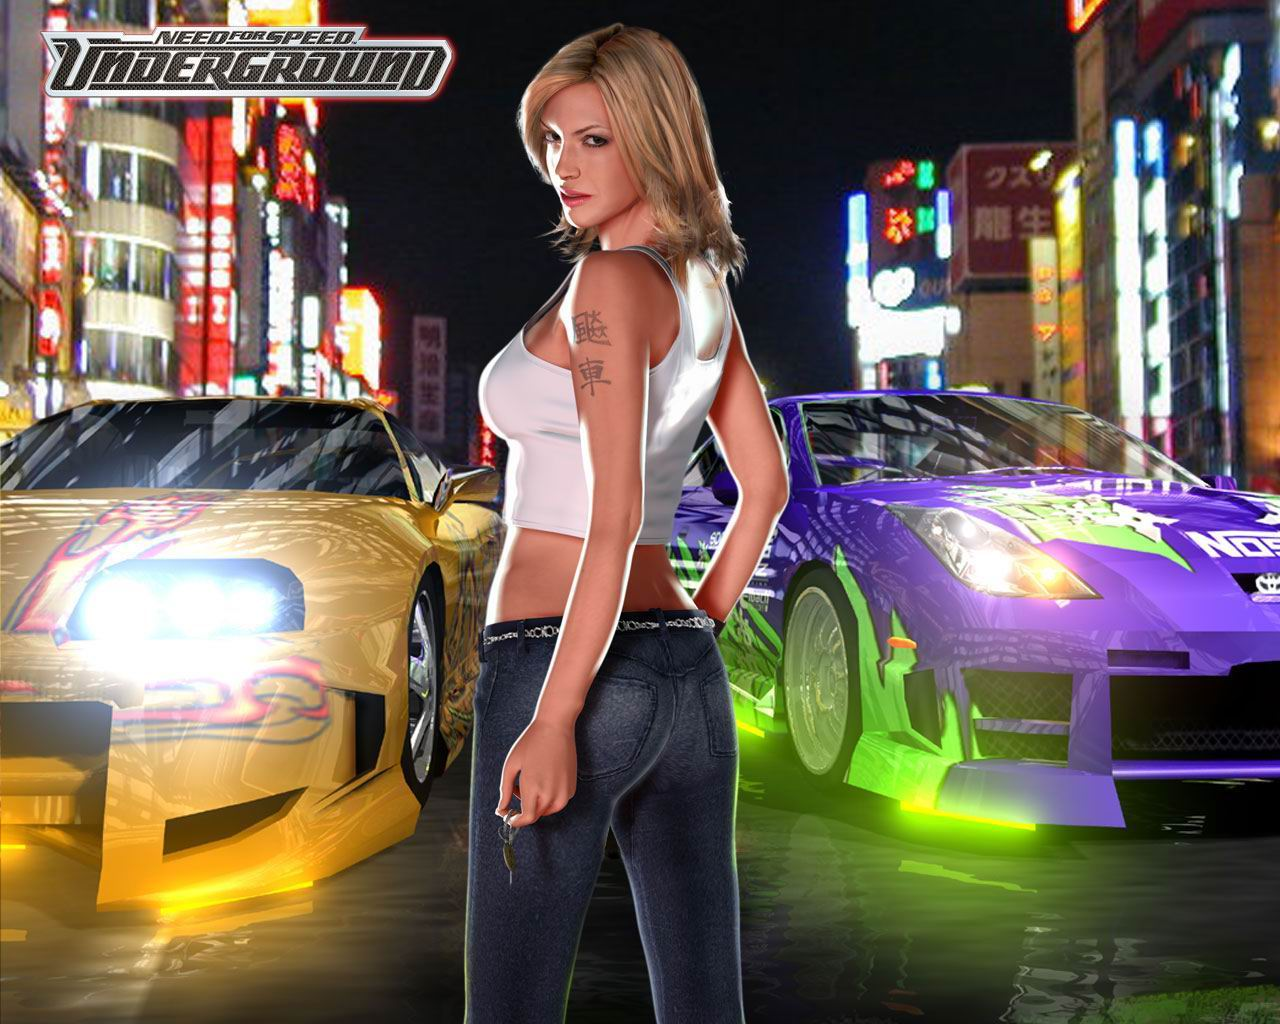 Naked girls on nfs underground pron movies